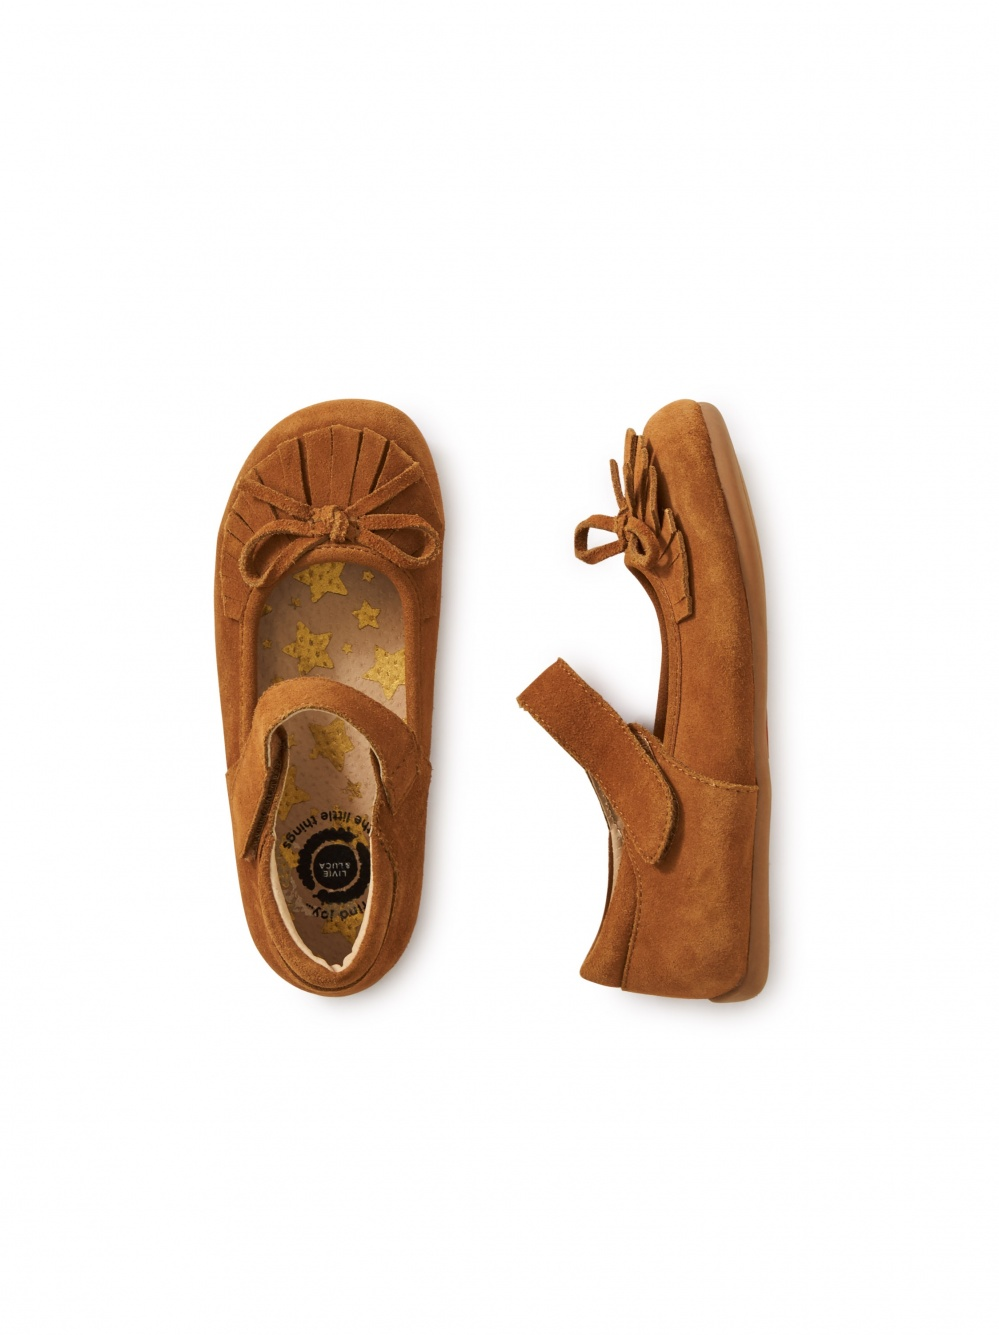 Willow Shoe